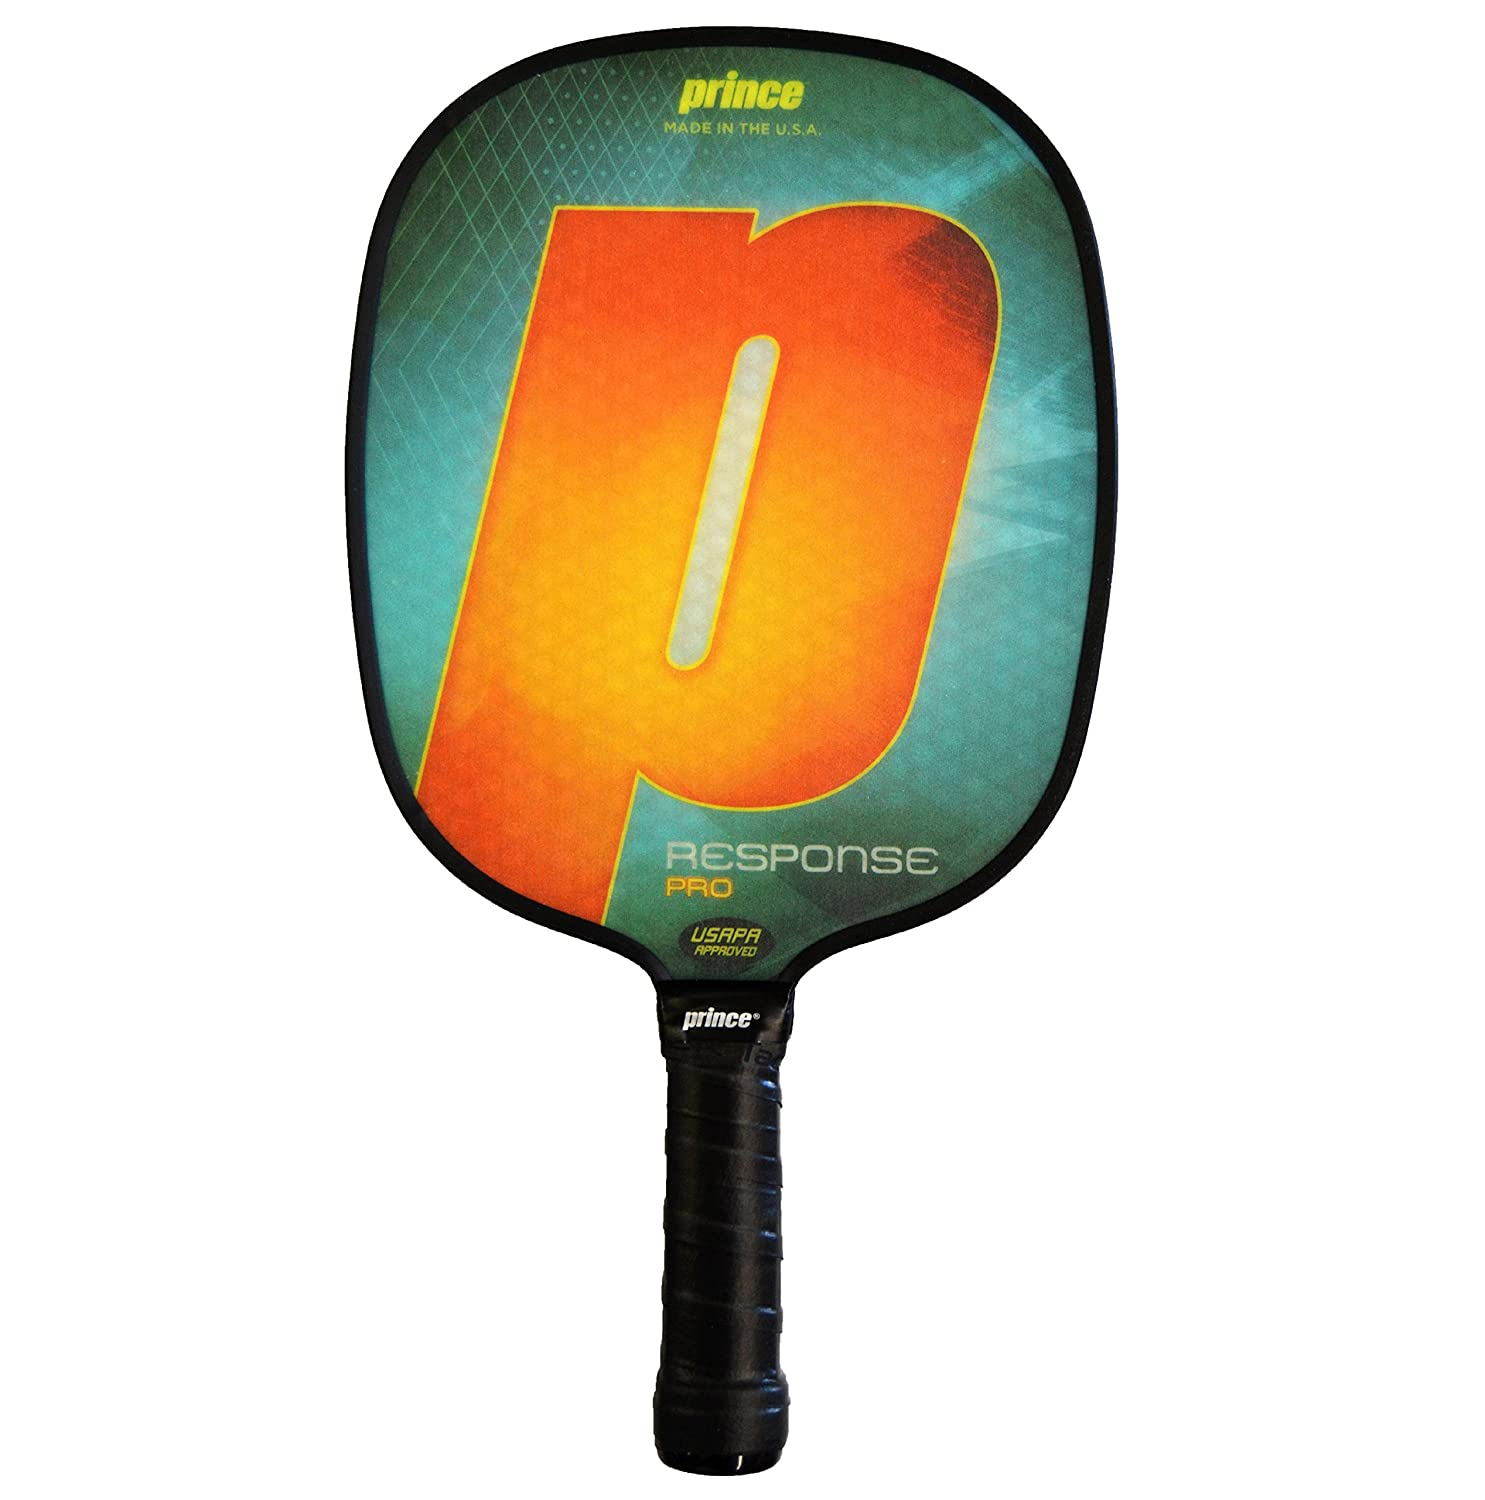 Prince response pro Weight Pickleballパドル Small B07D96KQ6B Grip Light Weight|Orange | Small Grip Orange | Small Grip Light Weight, ノモザキチョウ:8986681d --- lembahbougenville.com